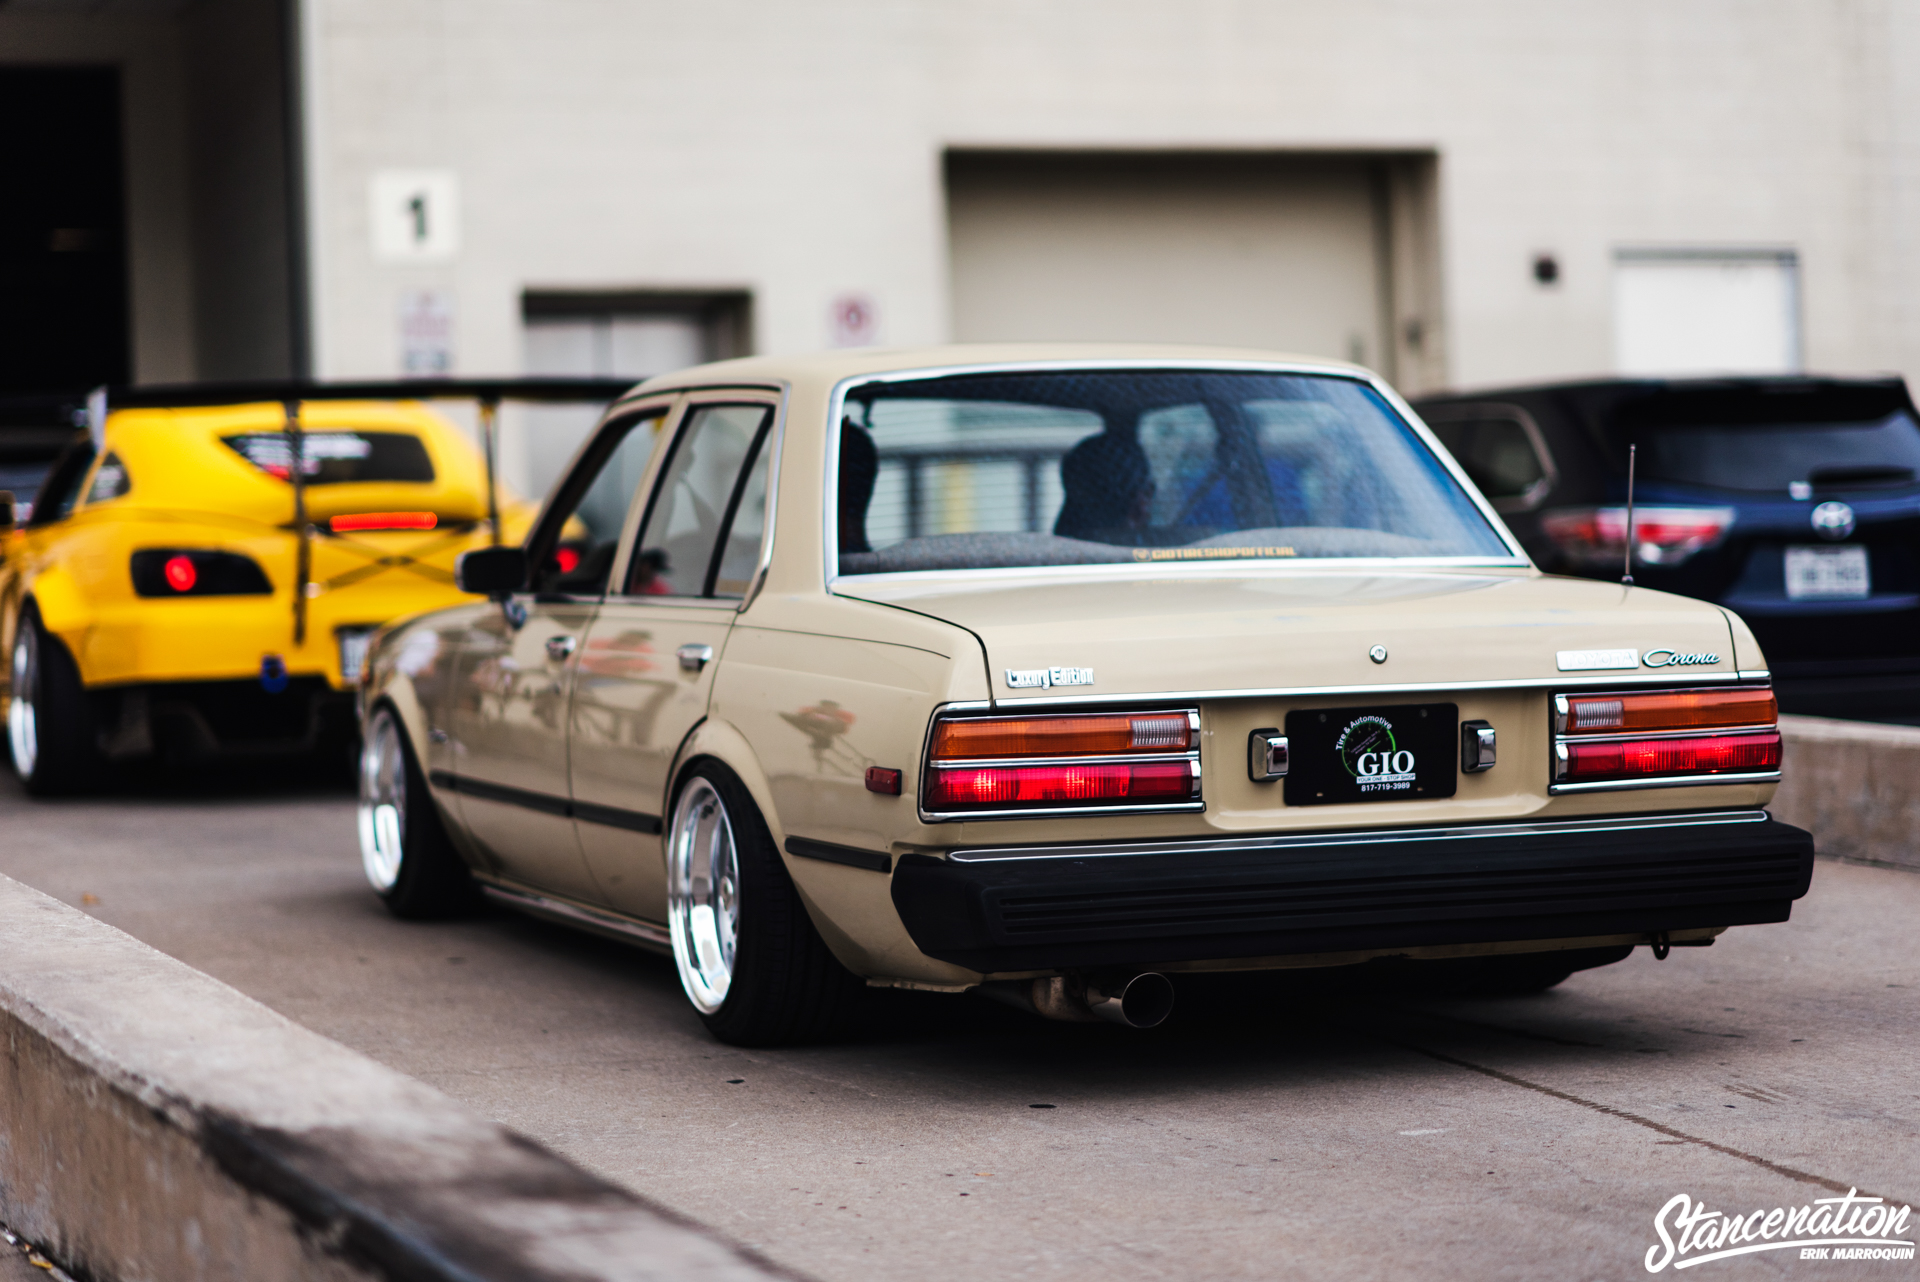 Stancenation texas mattmendoza flickr